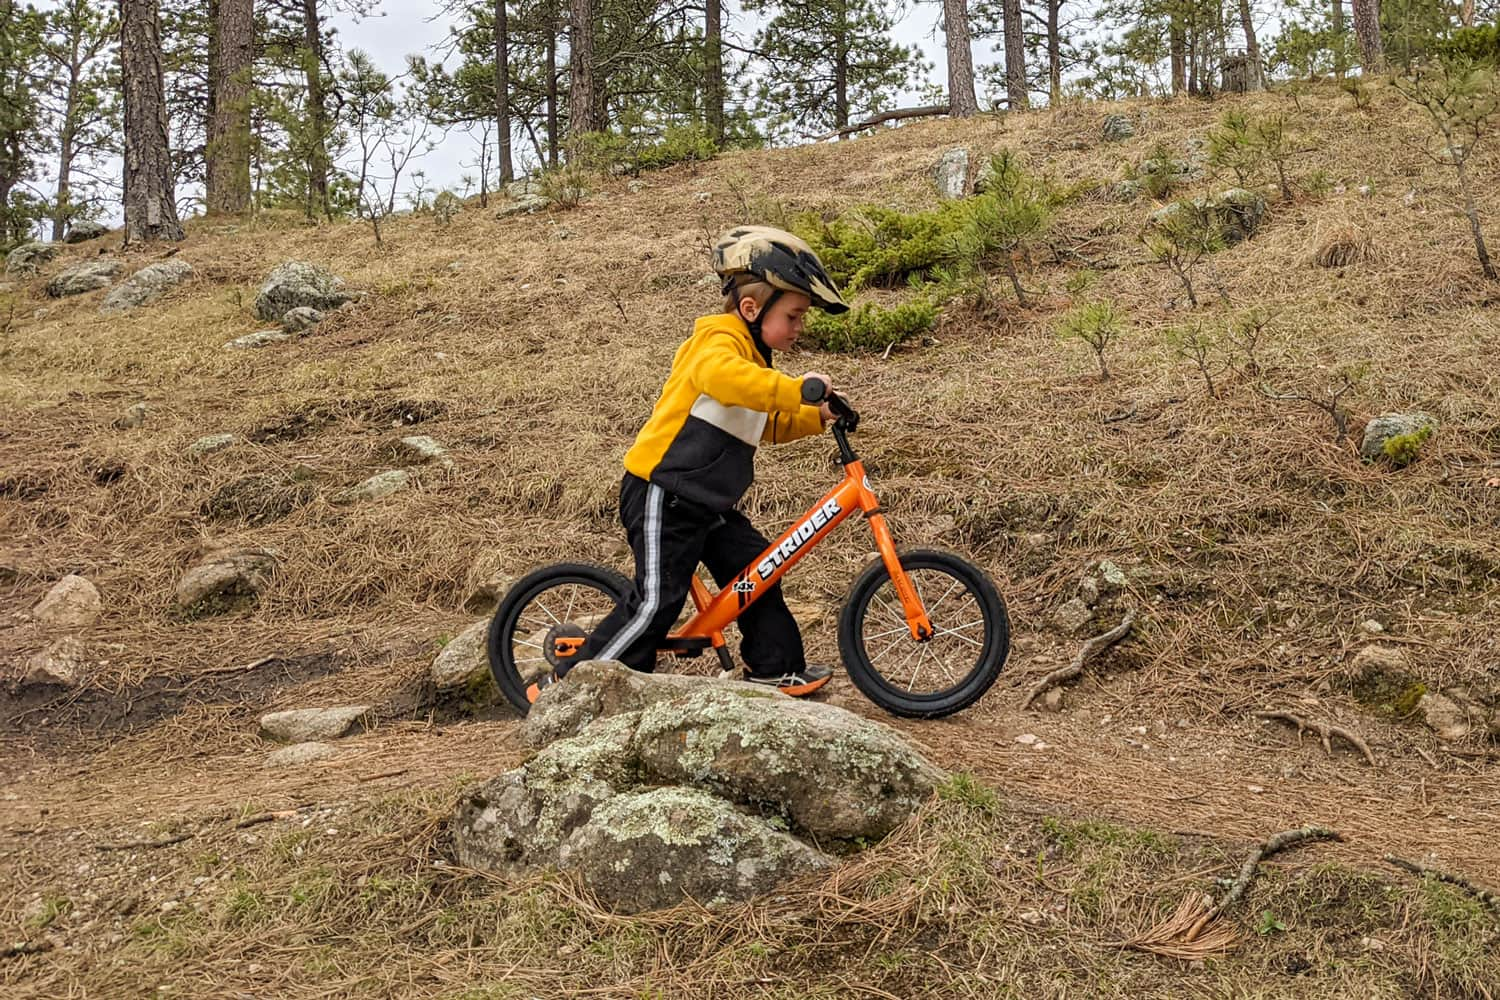 A child riding a Totally Tangerine colored Strider 14x Sport balance bike on a forest trail